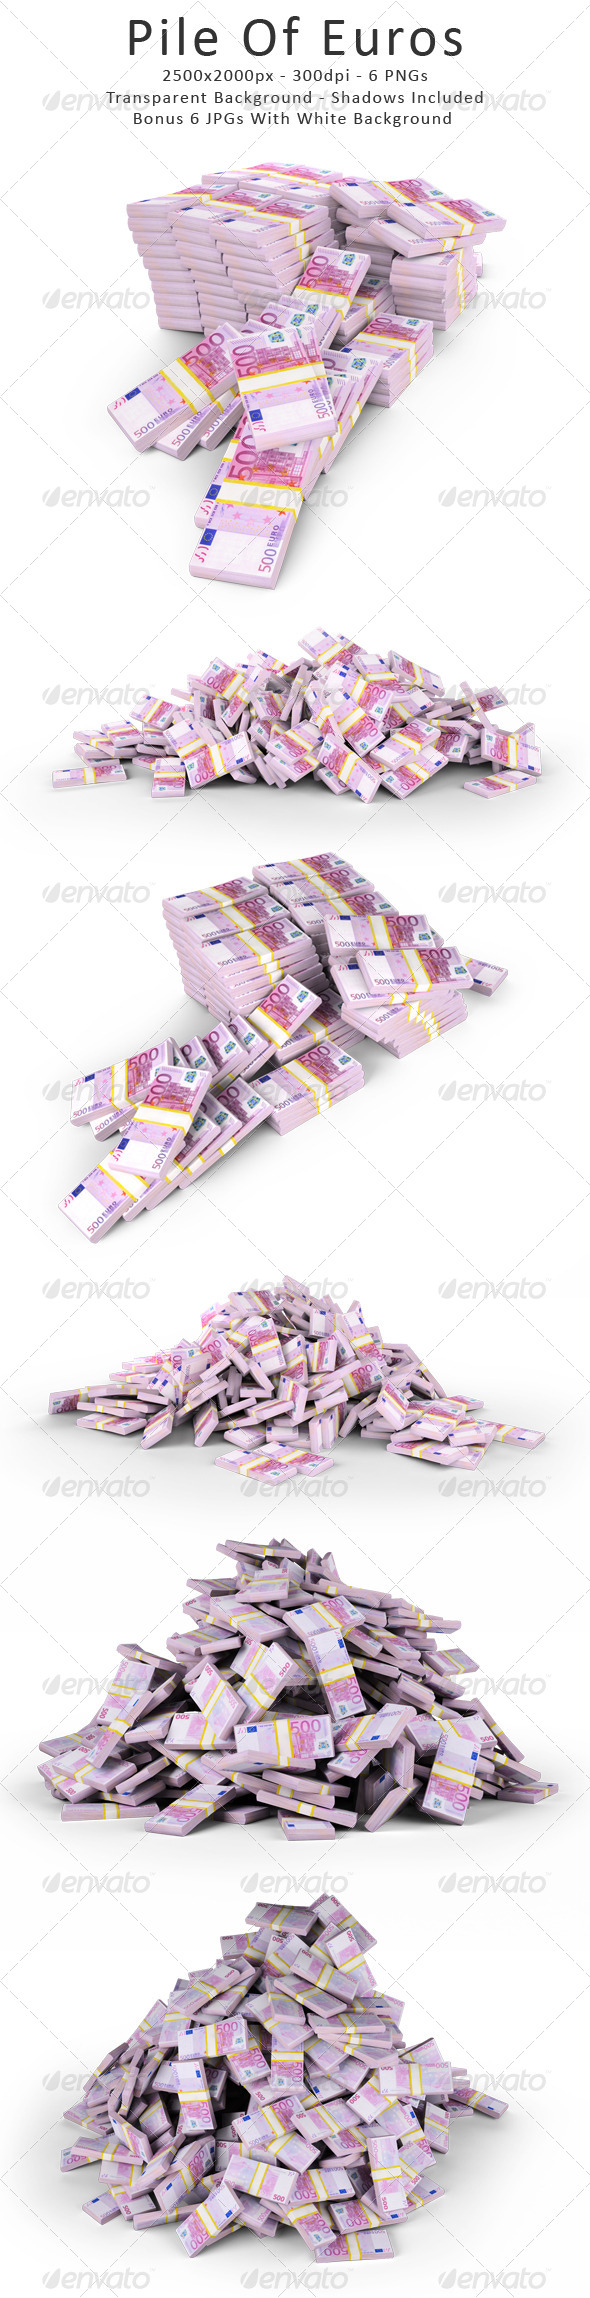 Pile Of Euros - Objects 3D Renders